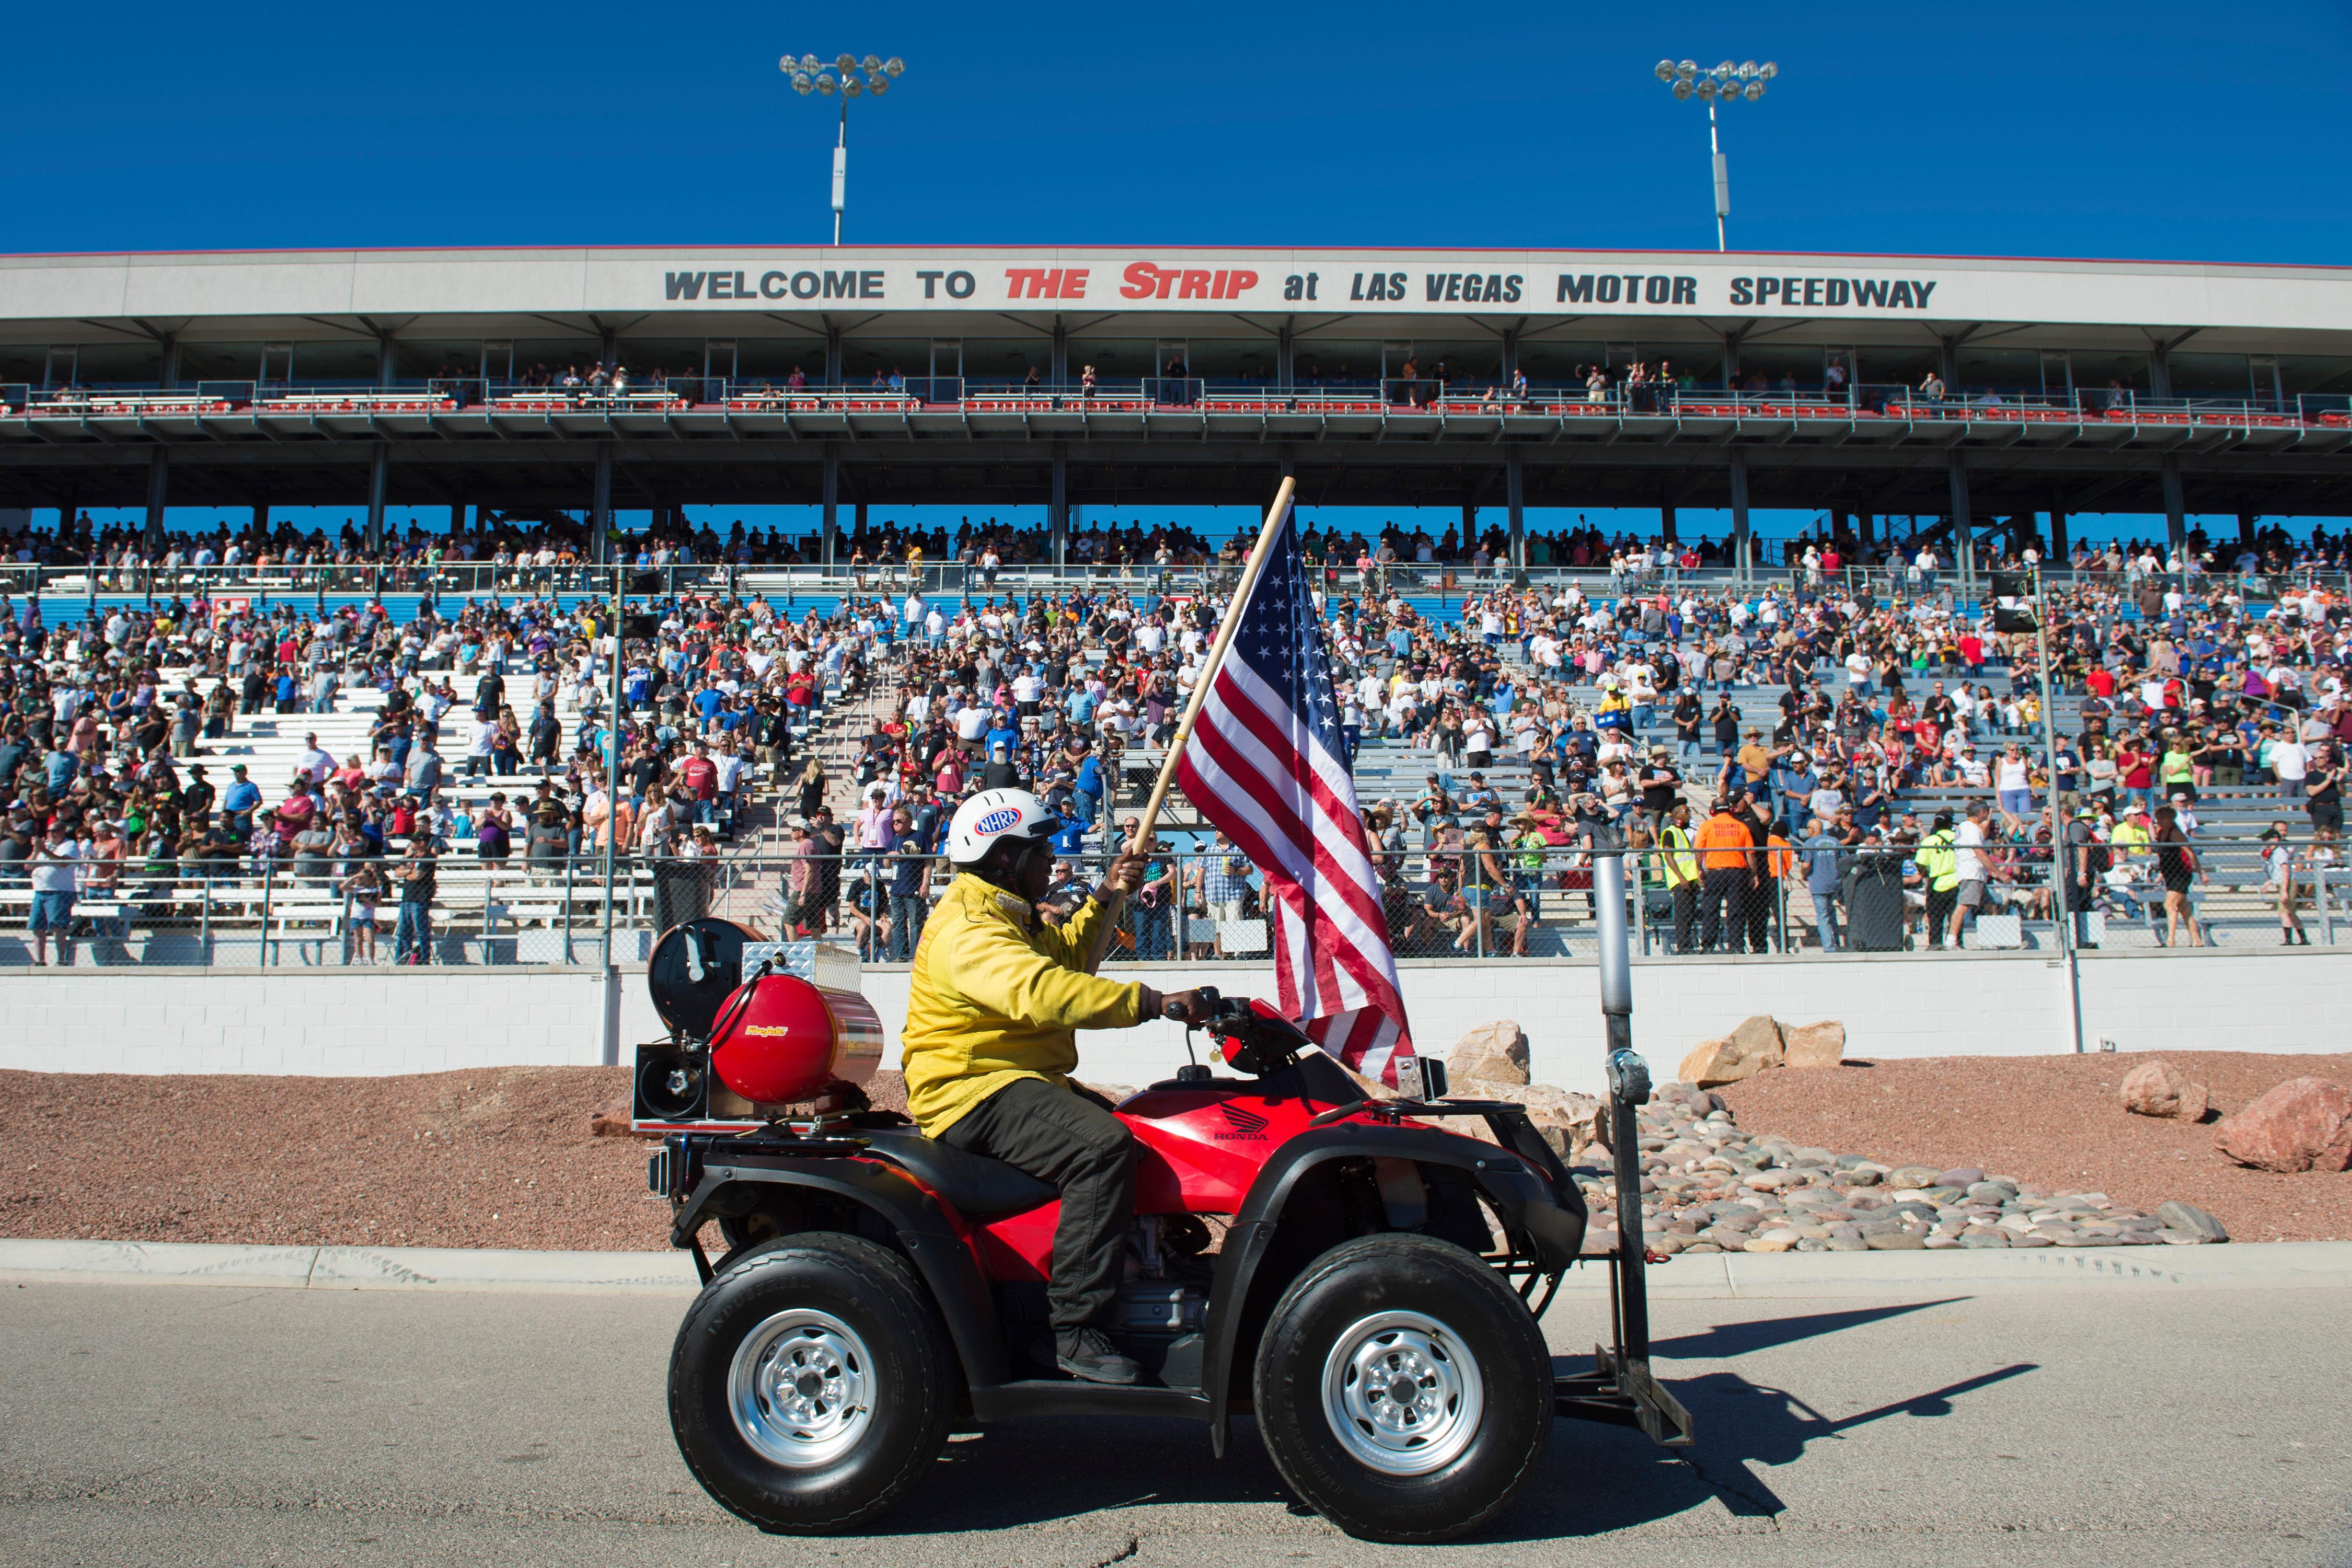 A safety official carries a flag on the return lane before the NHRA Toyota Nationals Sunday, October 29, 2017, at The Strip at the Las Vegas Motor Speedway. CREDIT: Sam Morris/Las Vegas News Bureau